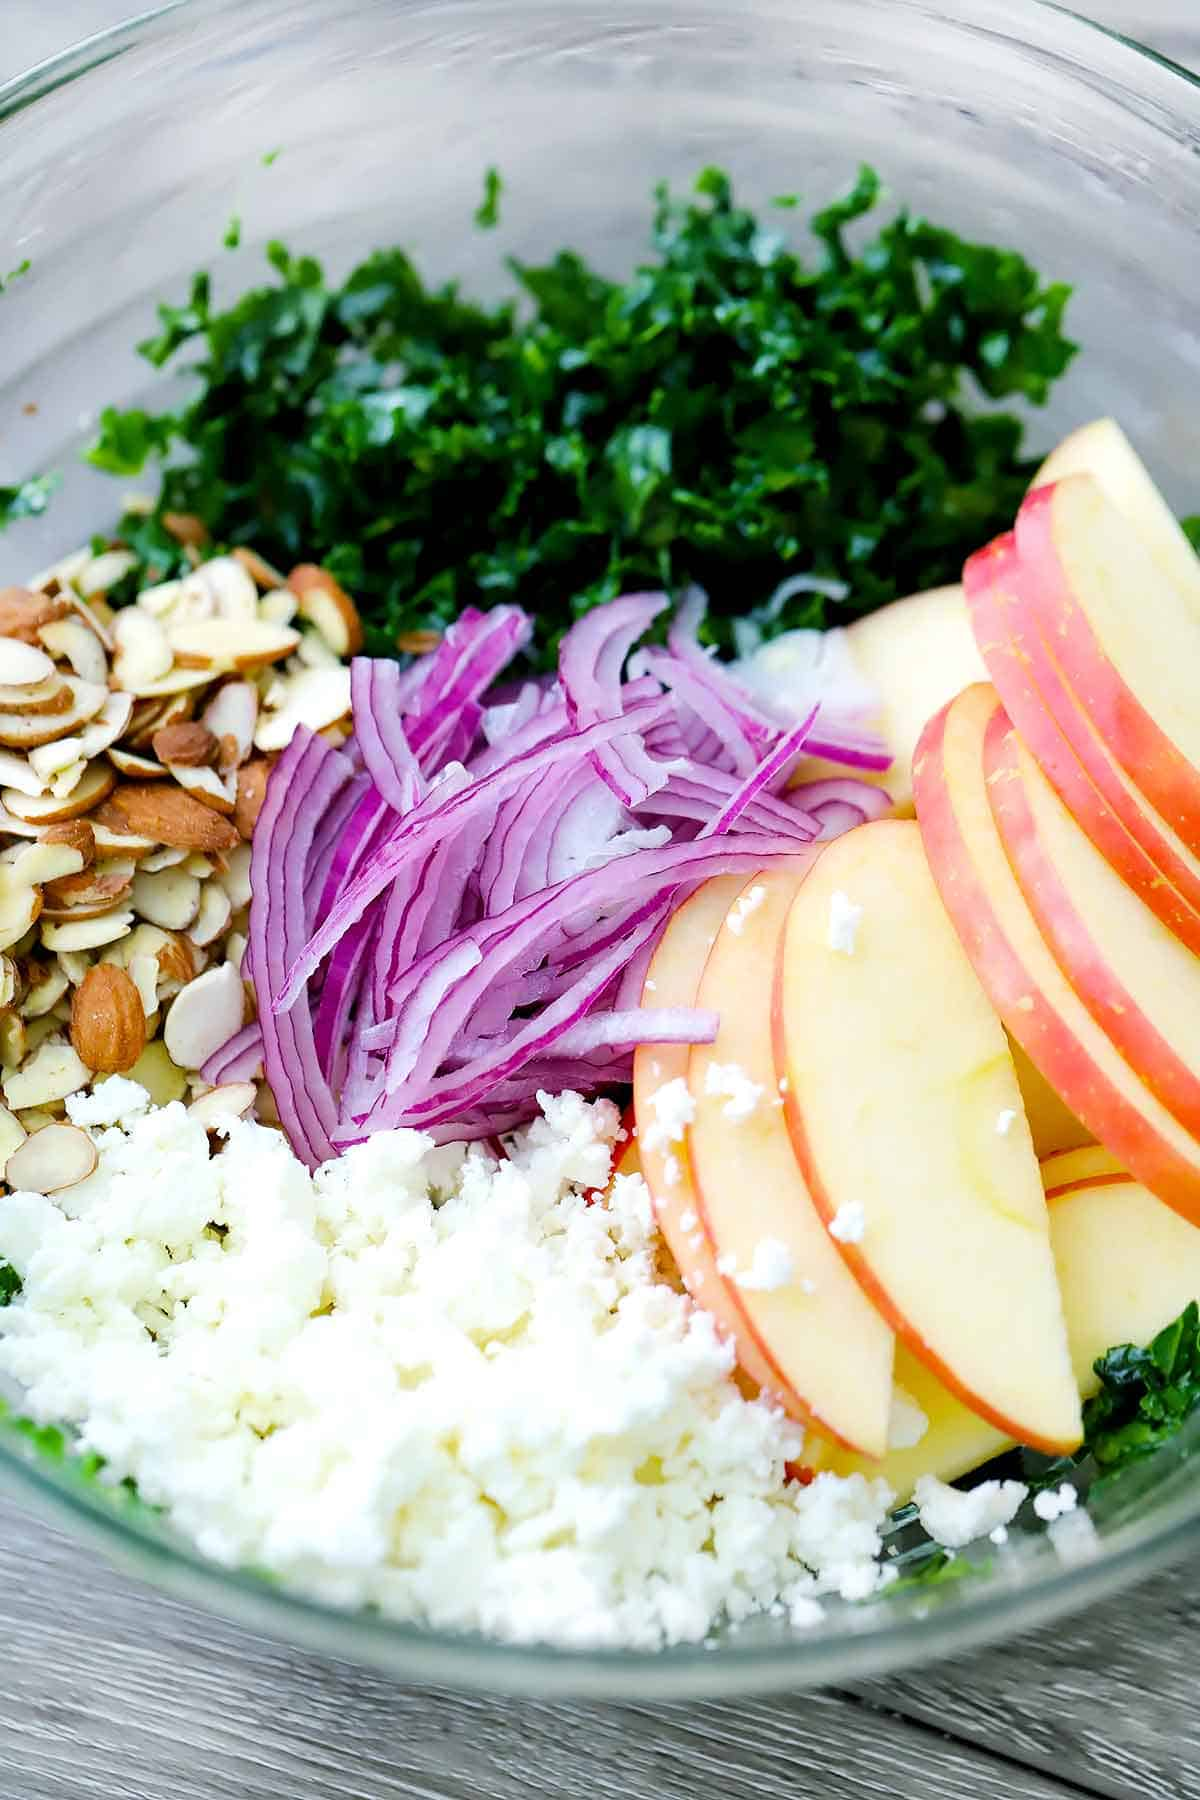 Kale, almonds, red onions, apples, and goat cheese placed in a glass bowl.